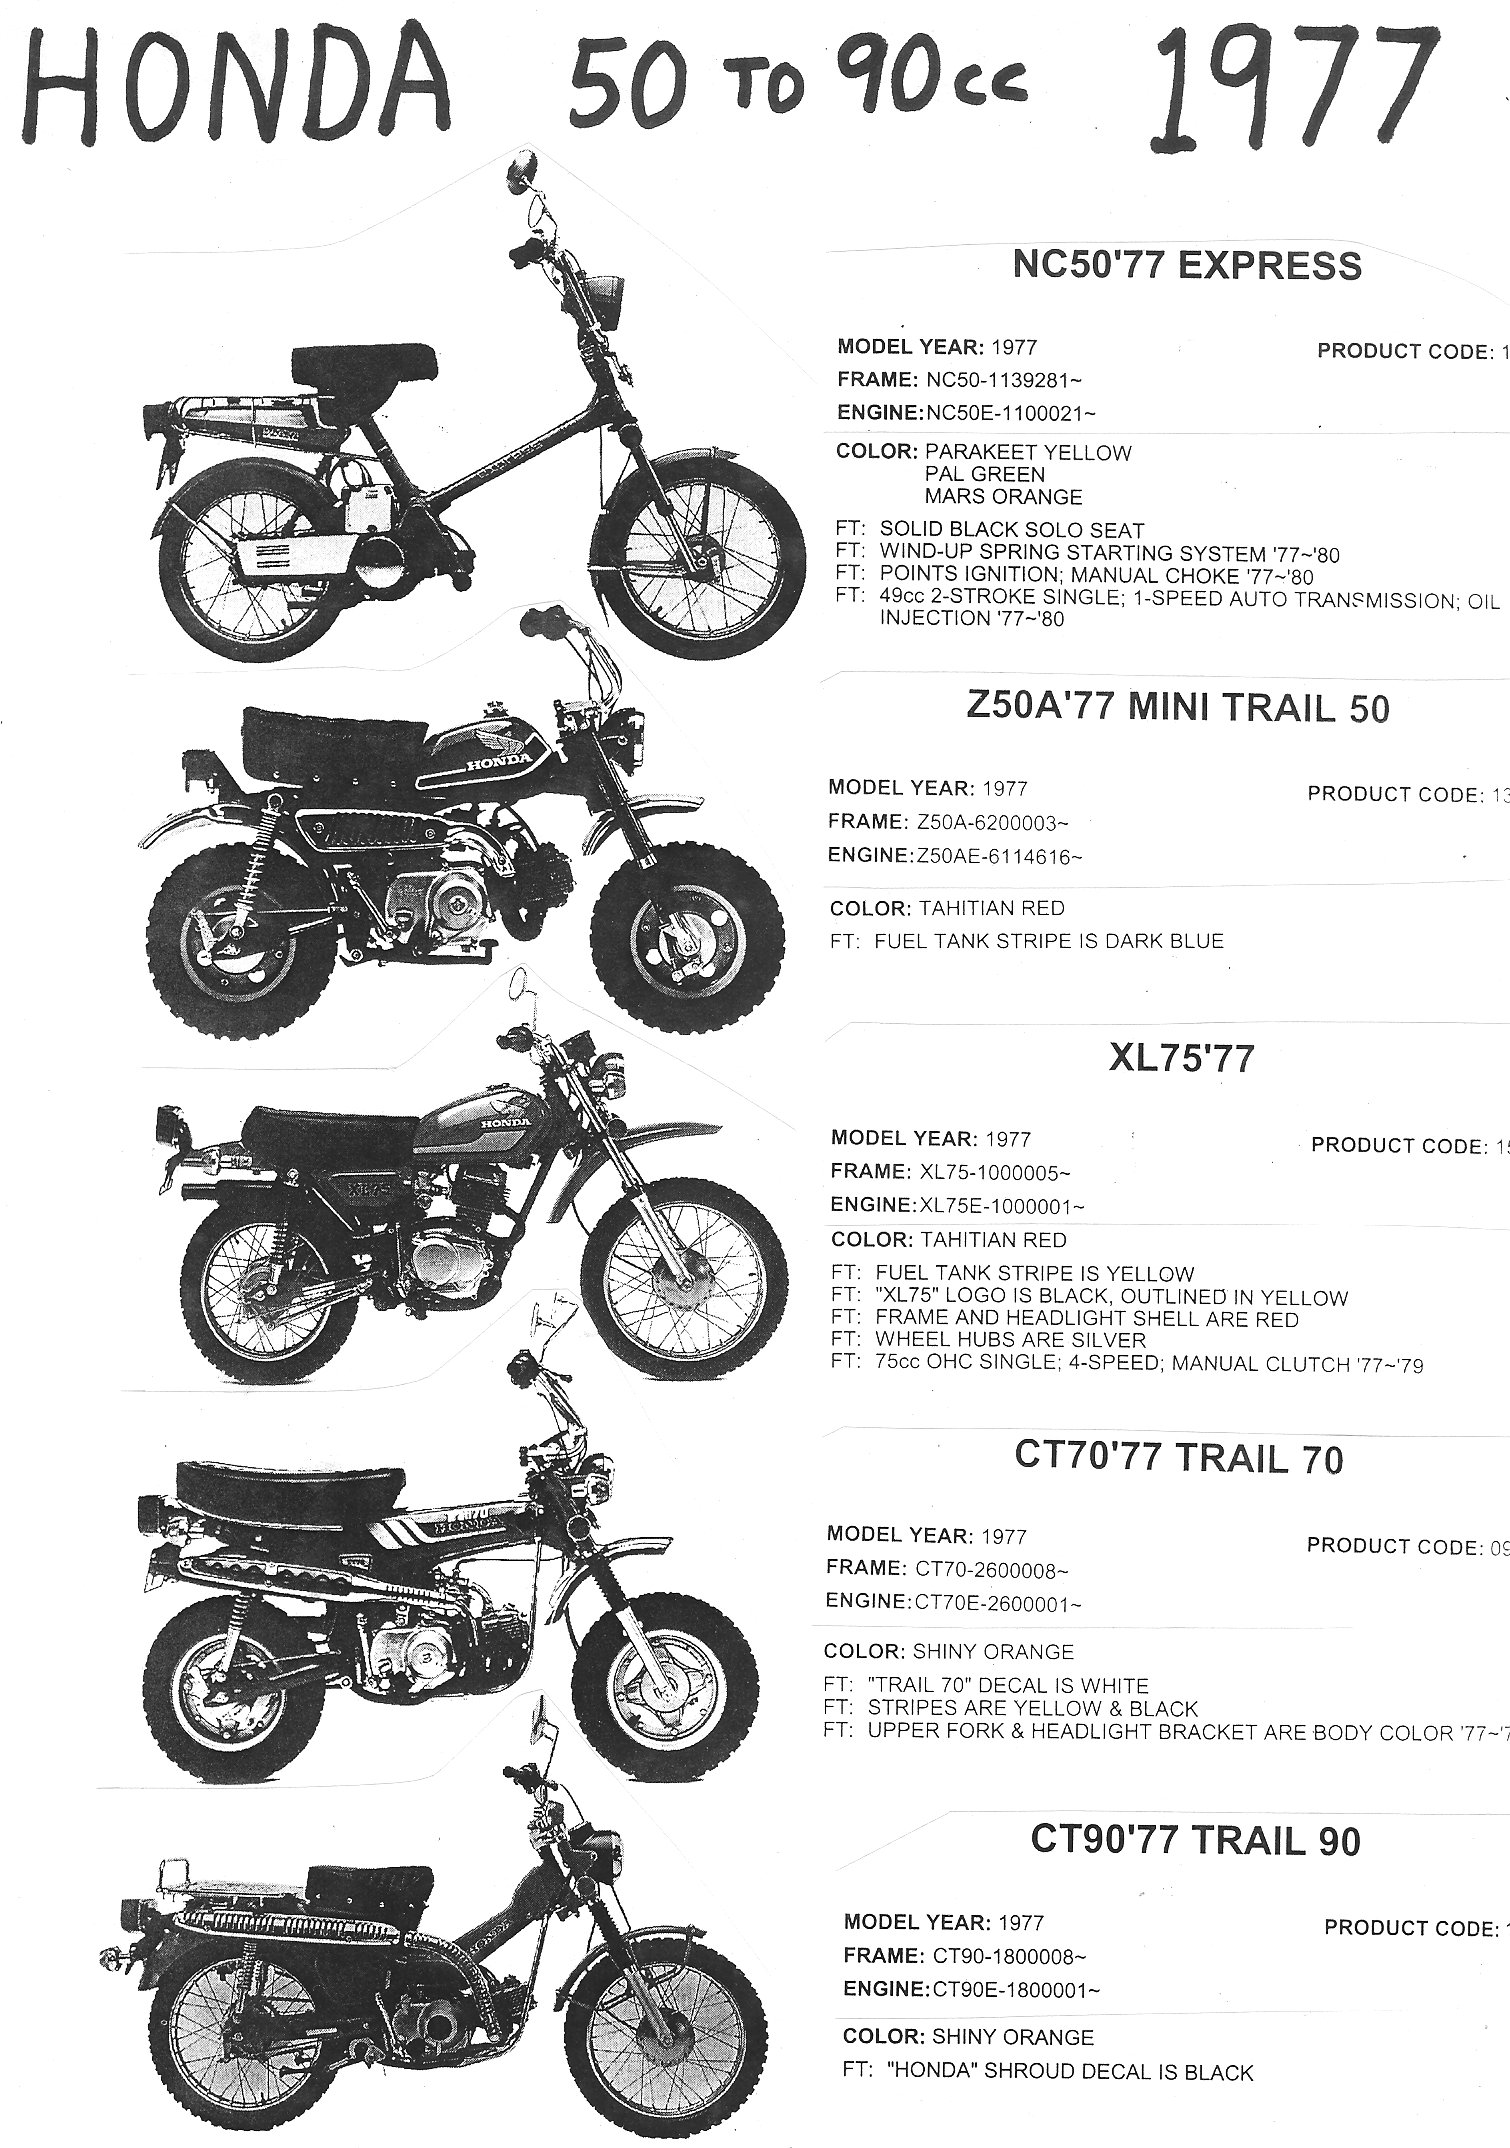 ct90 engine diagram honda ct wiring diagram images honda ct wiring honda acirc myrons mopeds honda 1977